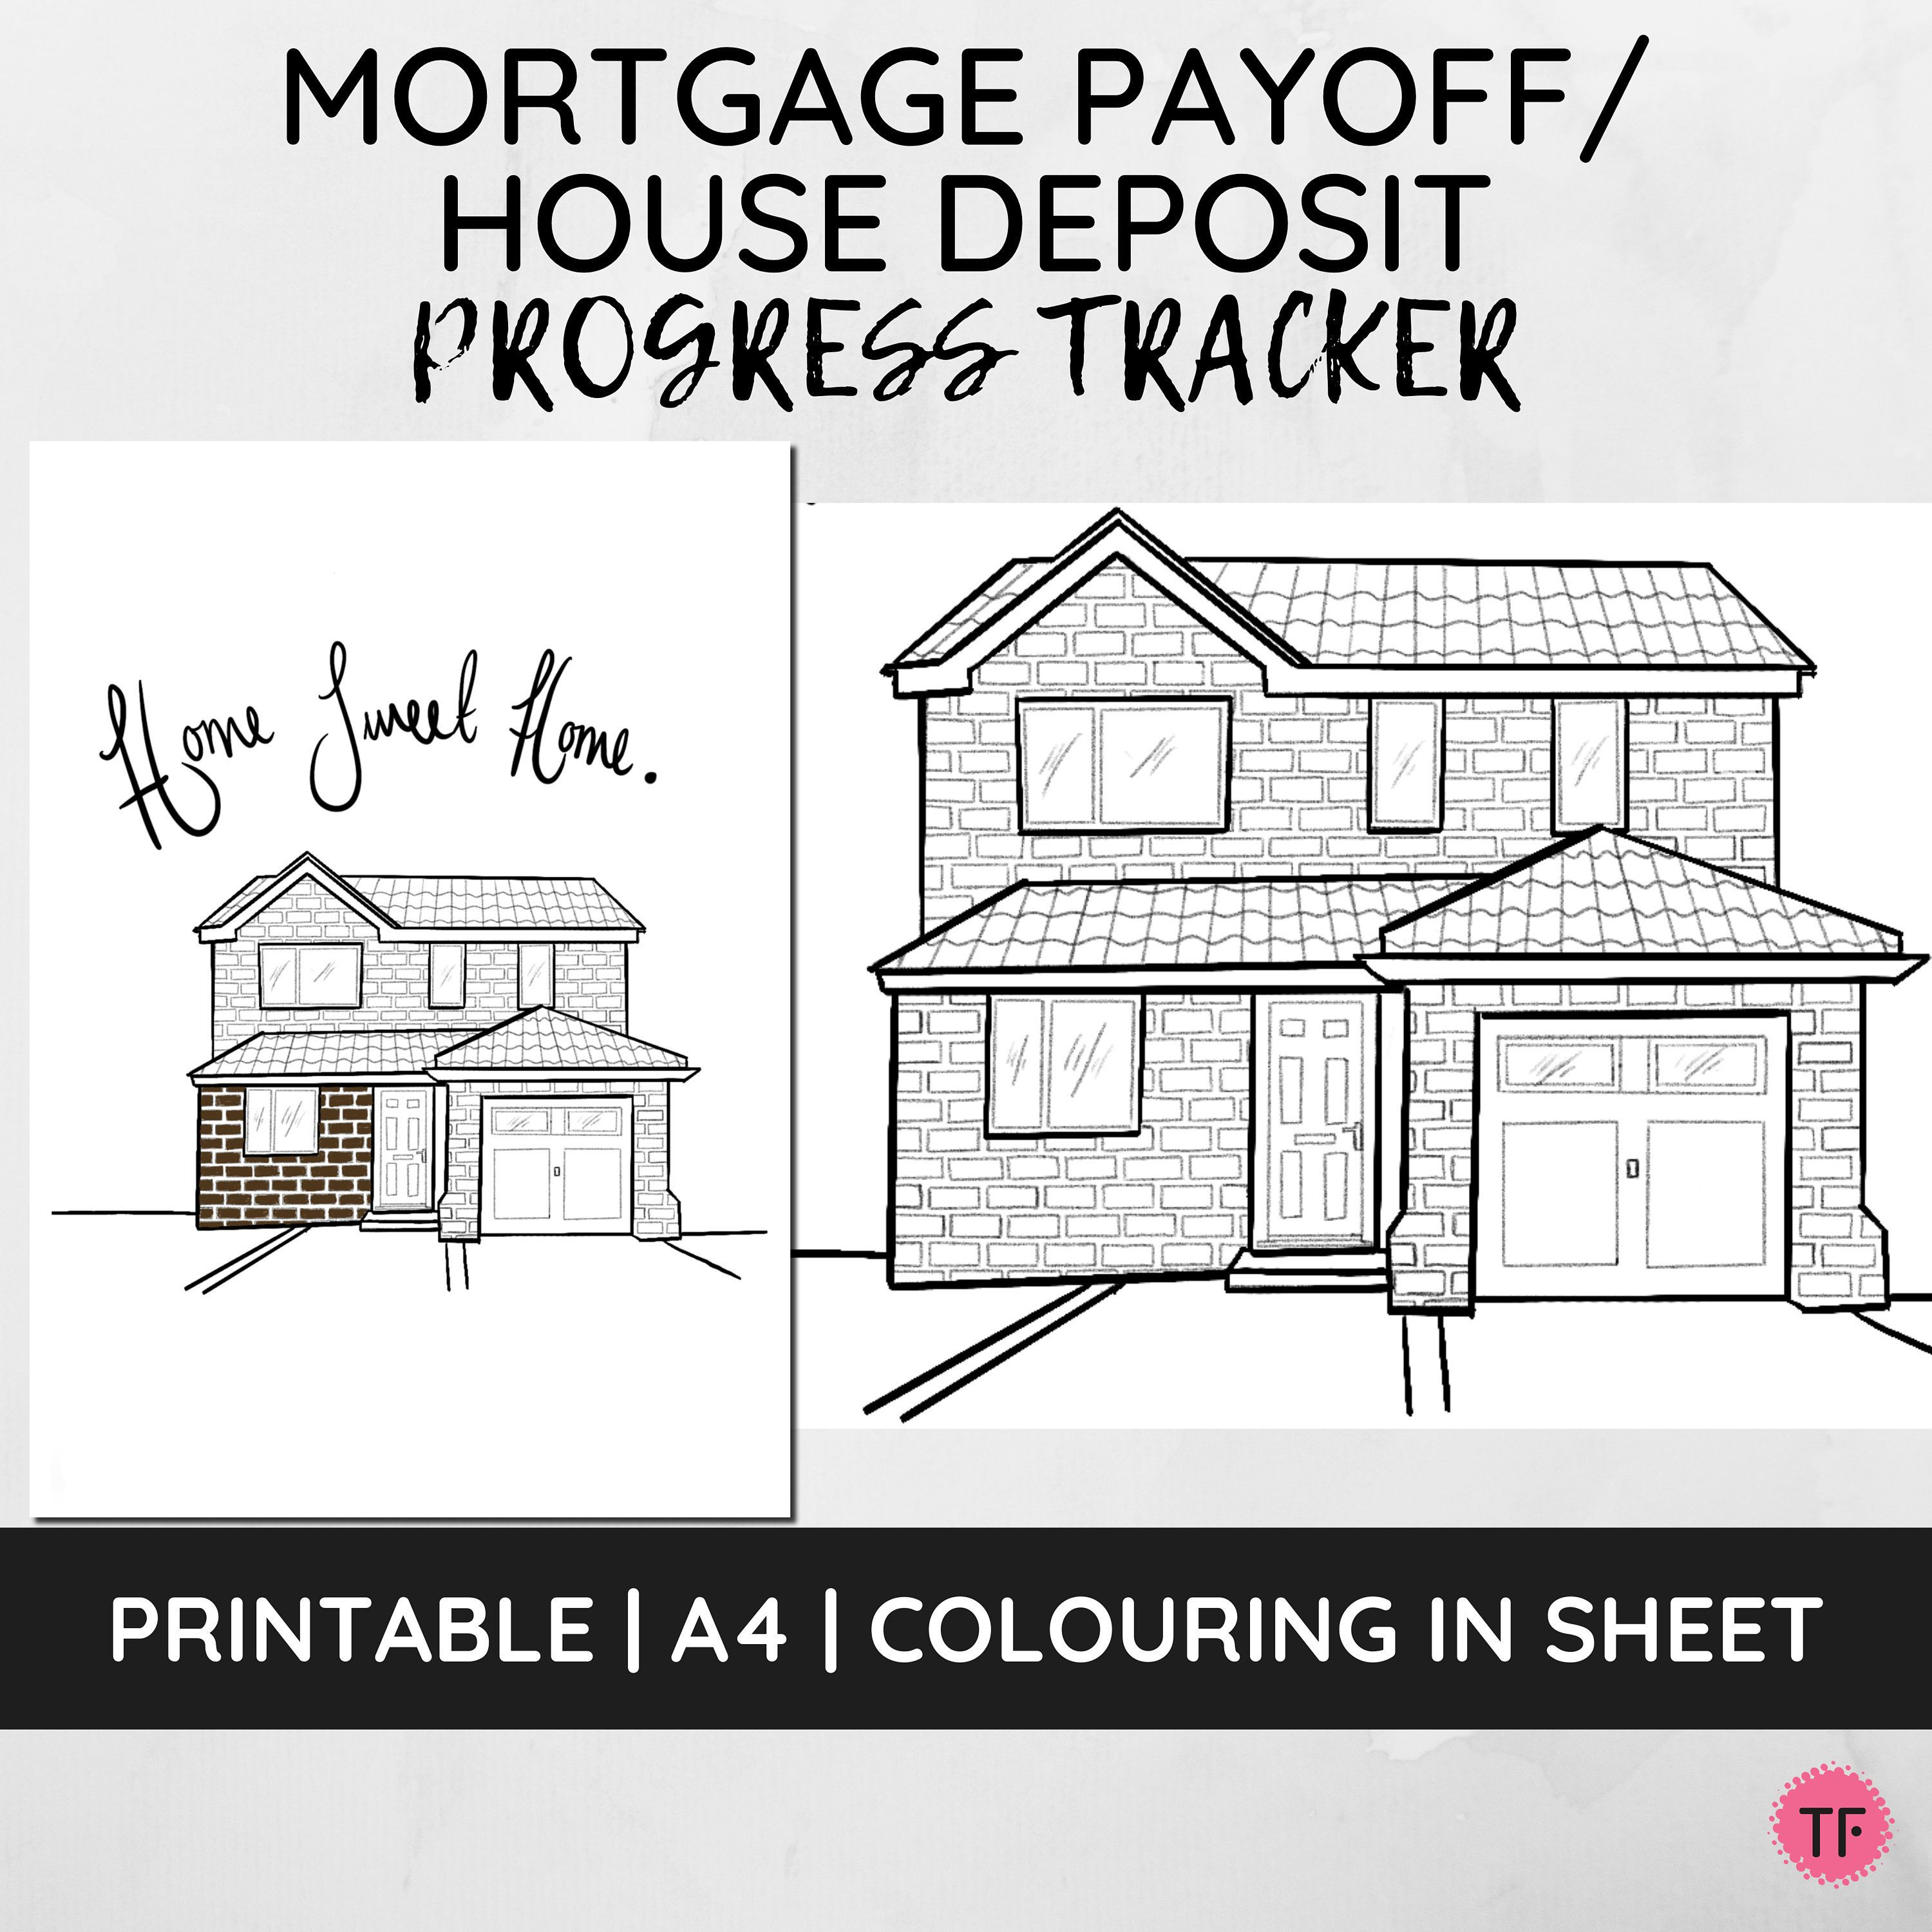 Progress Tracker House Deposit Mortgage Payoff Debt Etsy In 2020 Mortgage Payoff Debt Tracker Debt Payoff